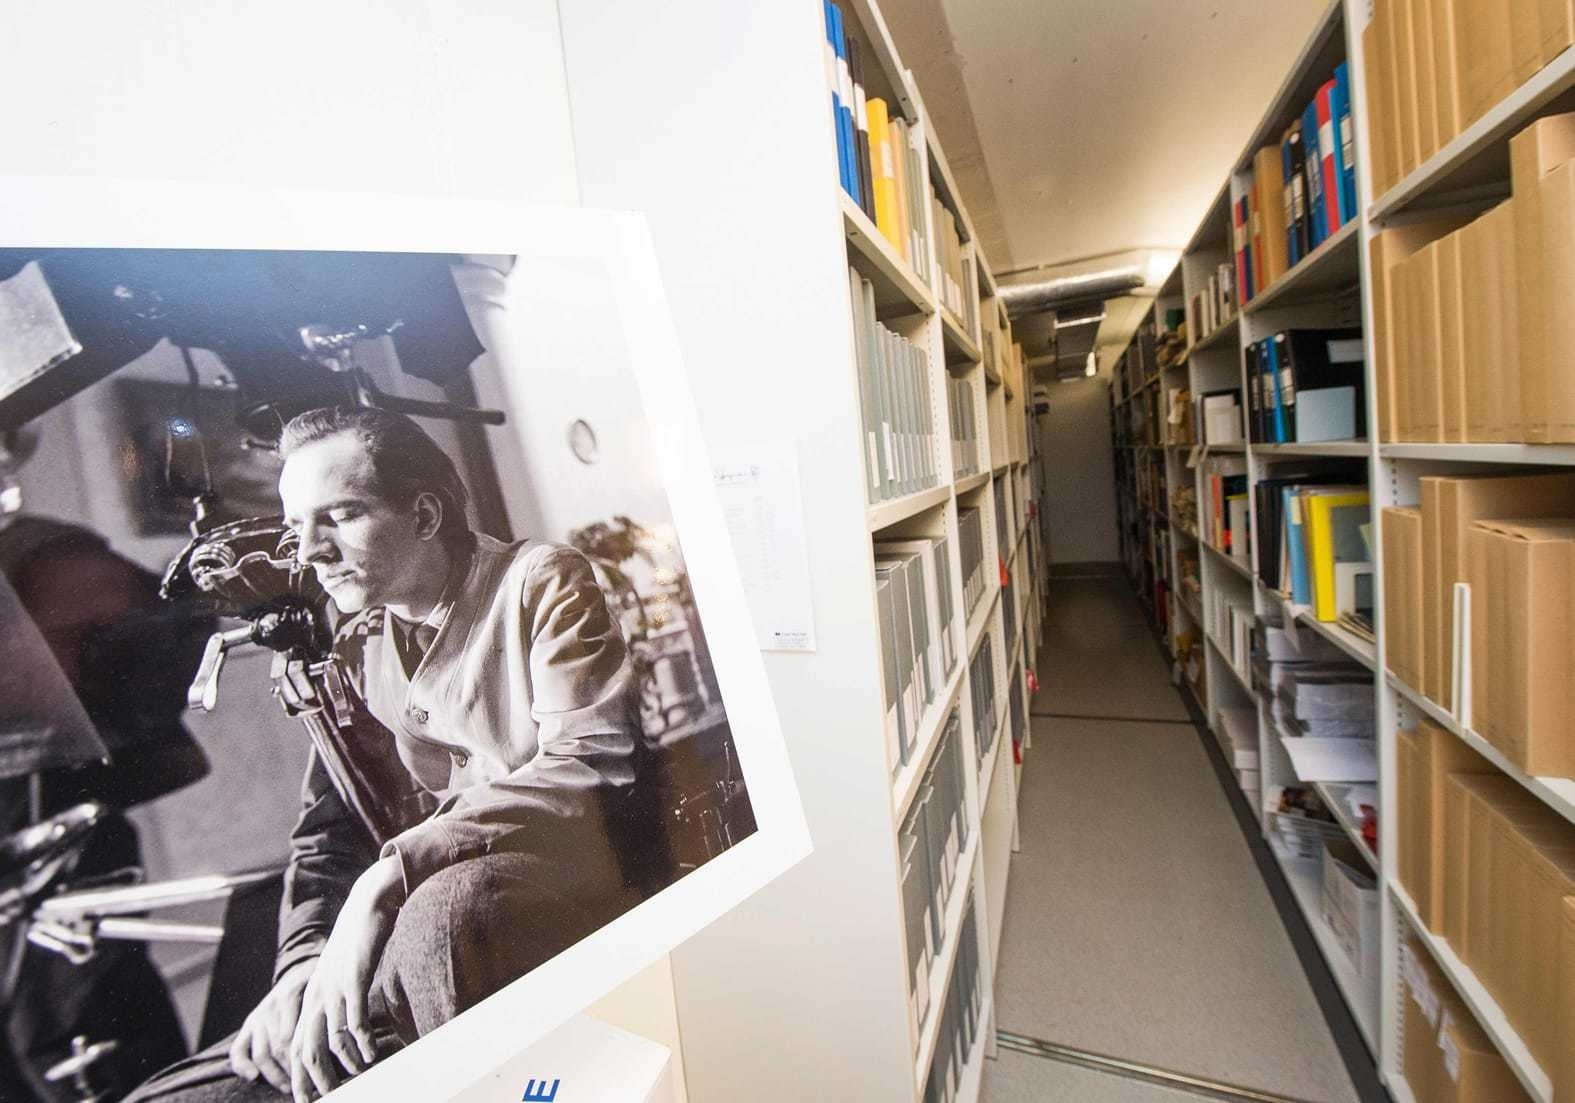 Ingmar Bergman archives located at the Film House in Stockholm.